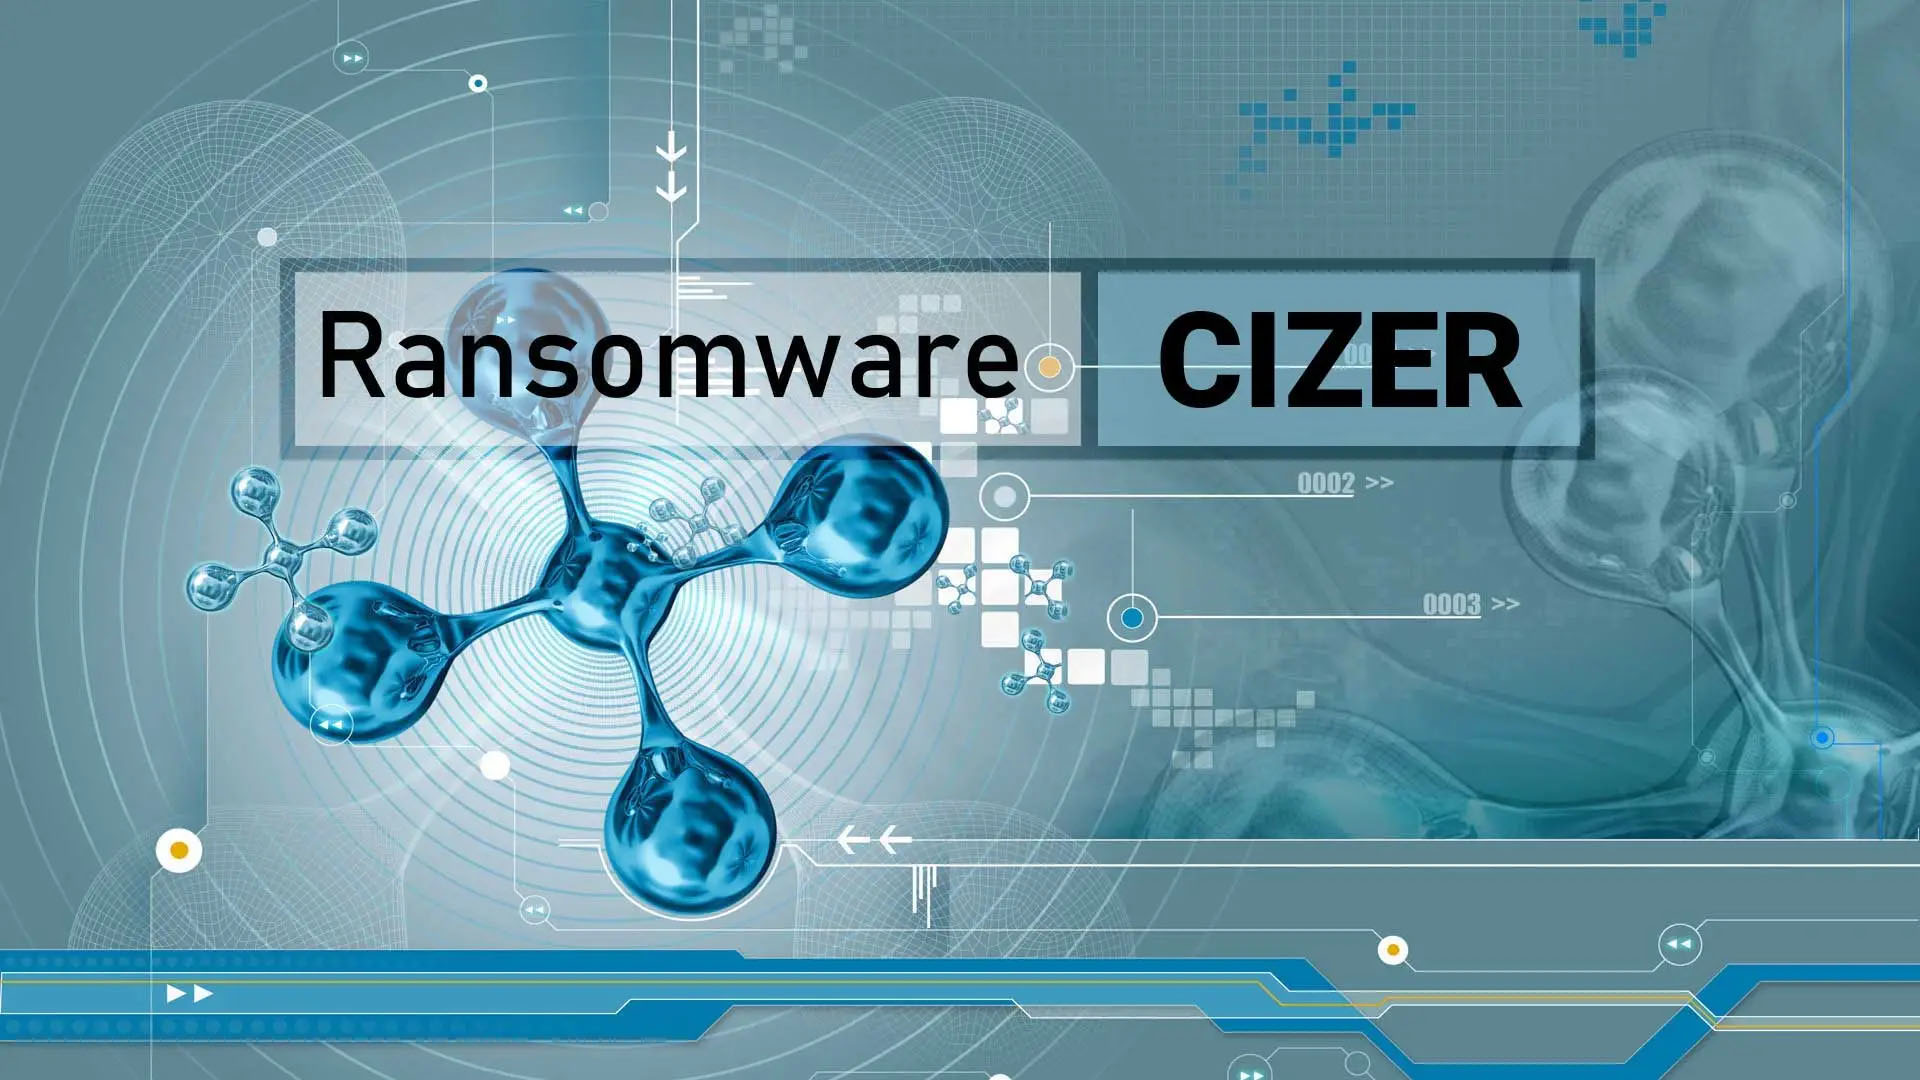 Cizer Ransomware